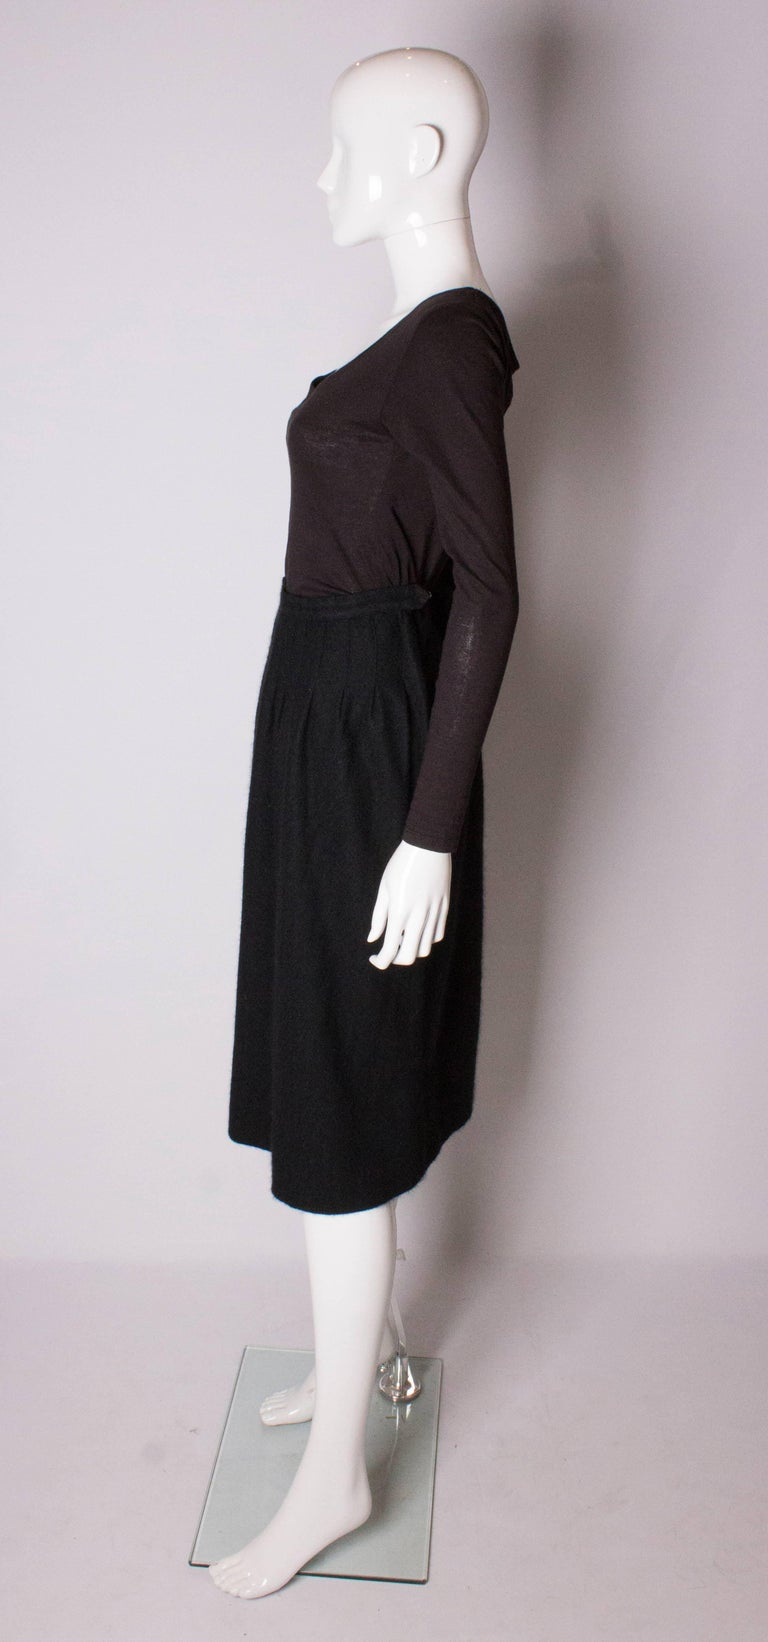 Yves Saint Laurent Vintage Rive Gauche Cashmere Skirt In Good Condition For Sale In London, GB